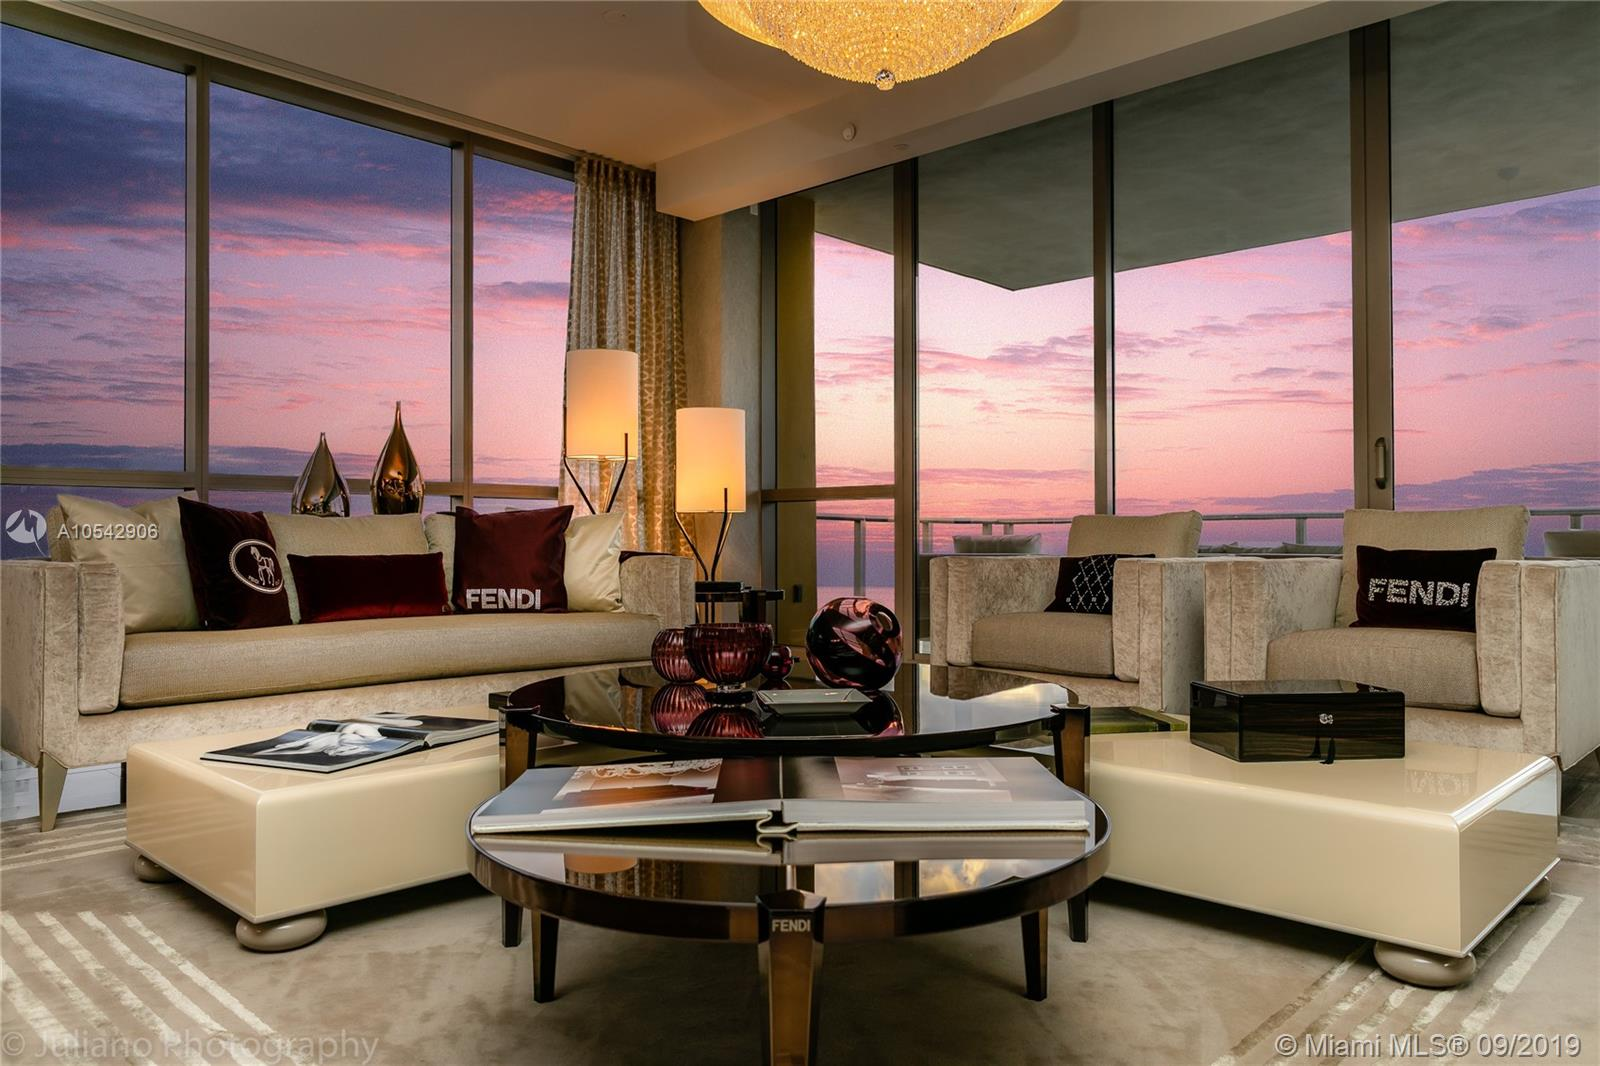 17749 Collins Ave, Unit #1901 Luxury Real Estate